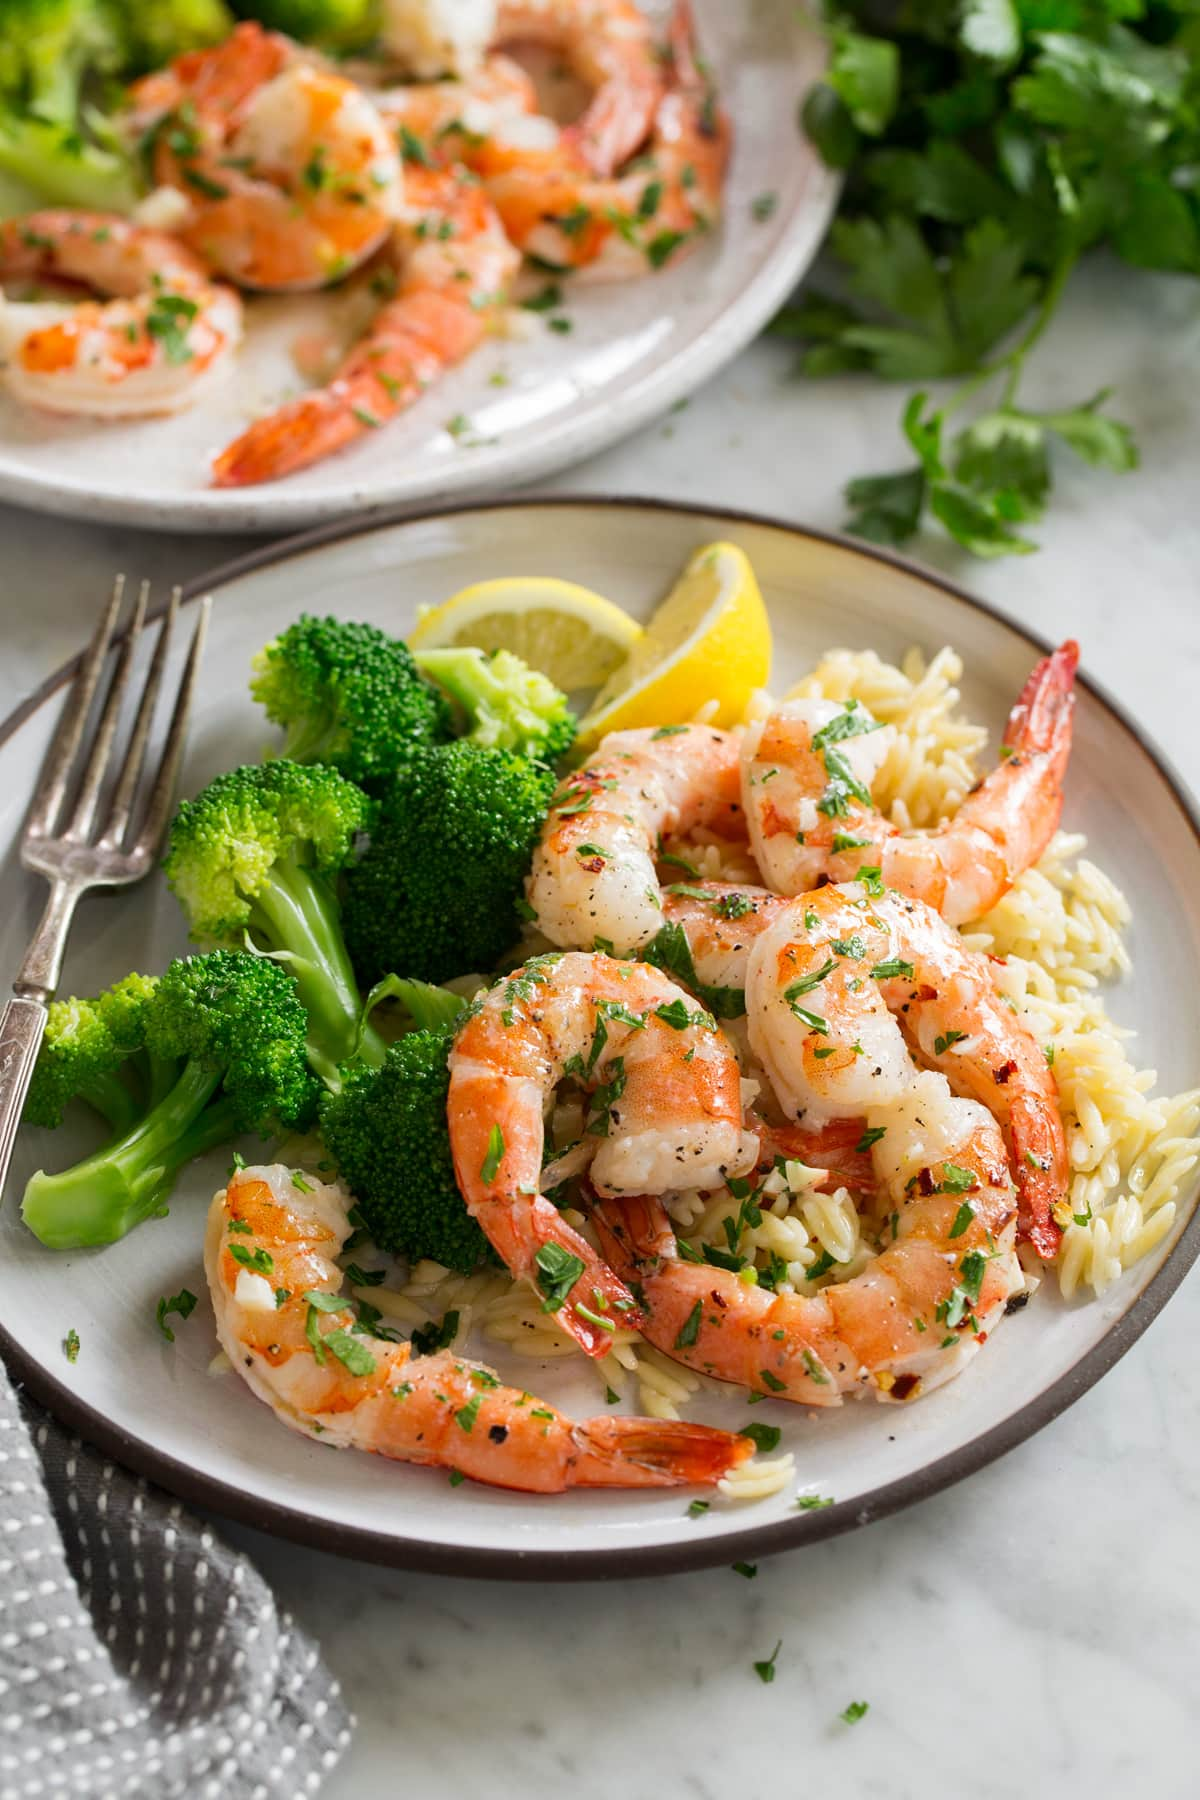 Baked shrimp on a white serving plate with orzo and broccoli.